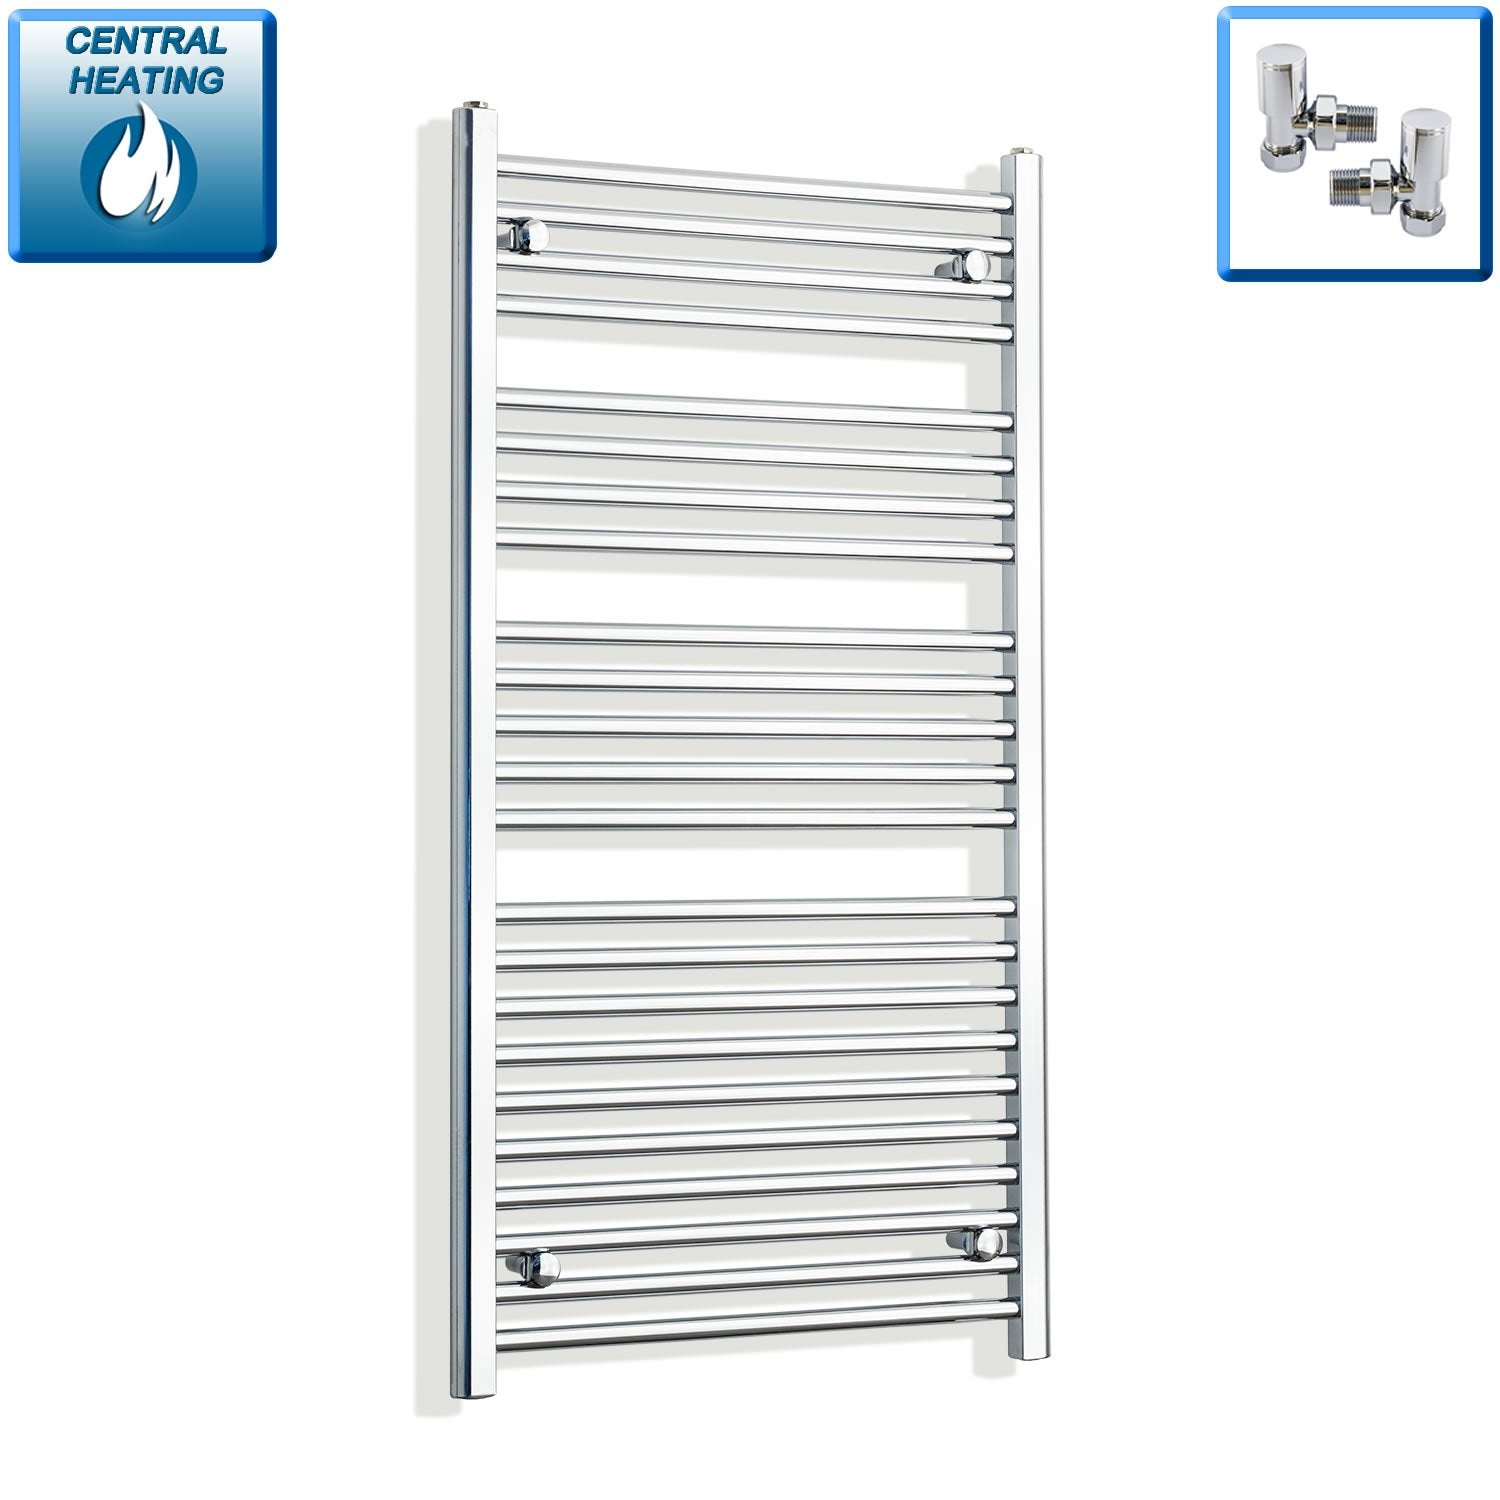 700mm Wide 1200mm High Curved Chrome Heated Towel Rail Radiator HTR,With Angled Valve